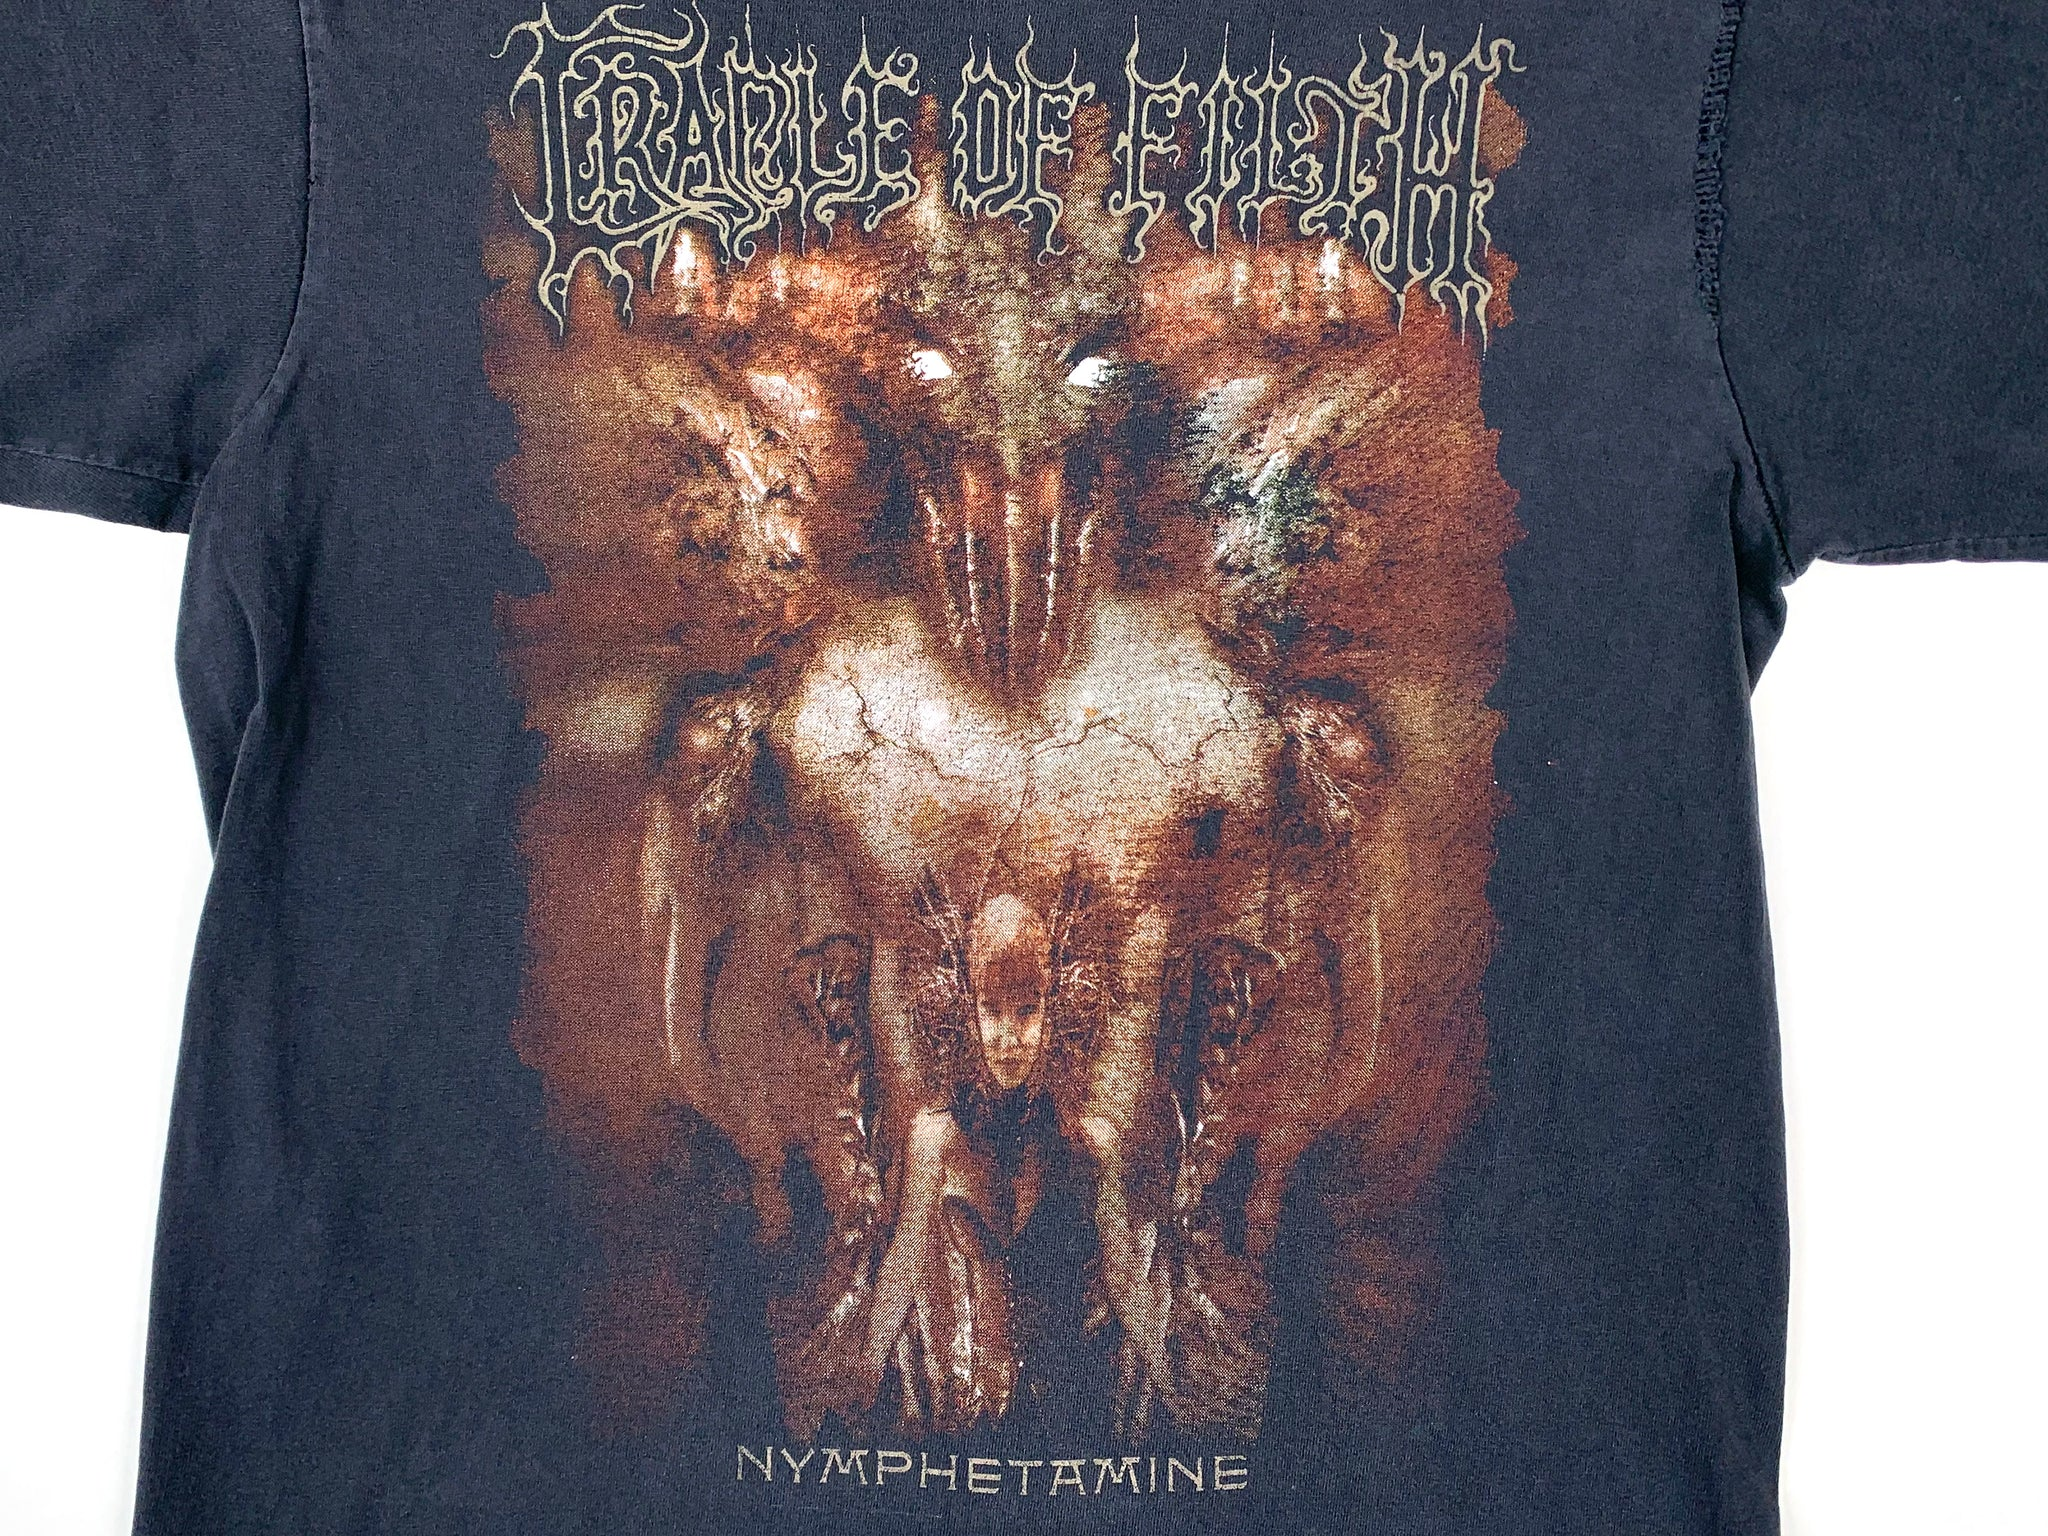 Cradle of Filth 'Nympetamine' T-Shirt